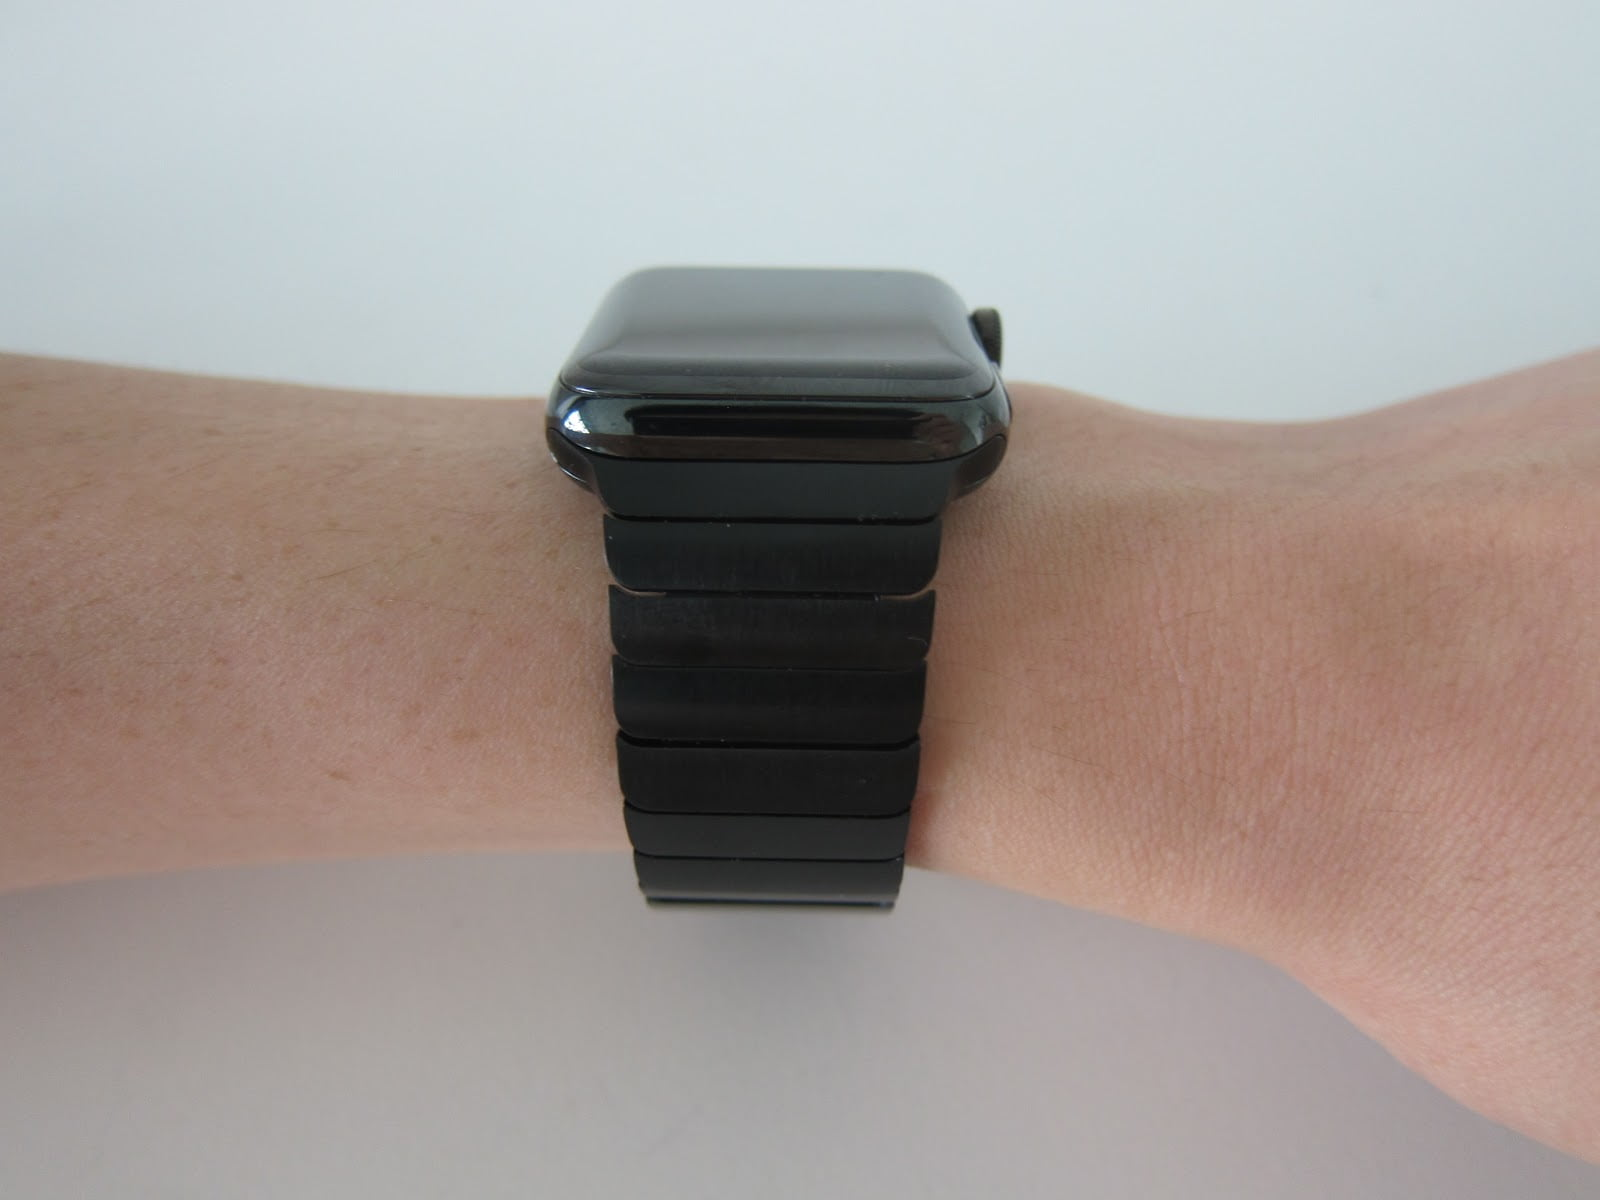 Making small but important choices: Apple Watch